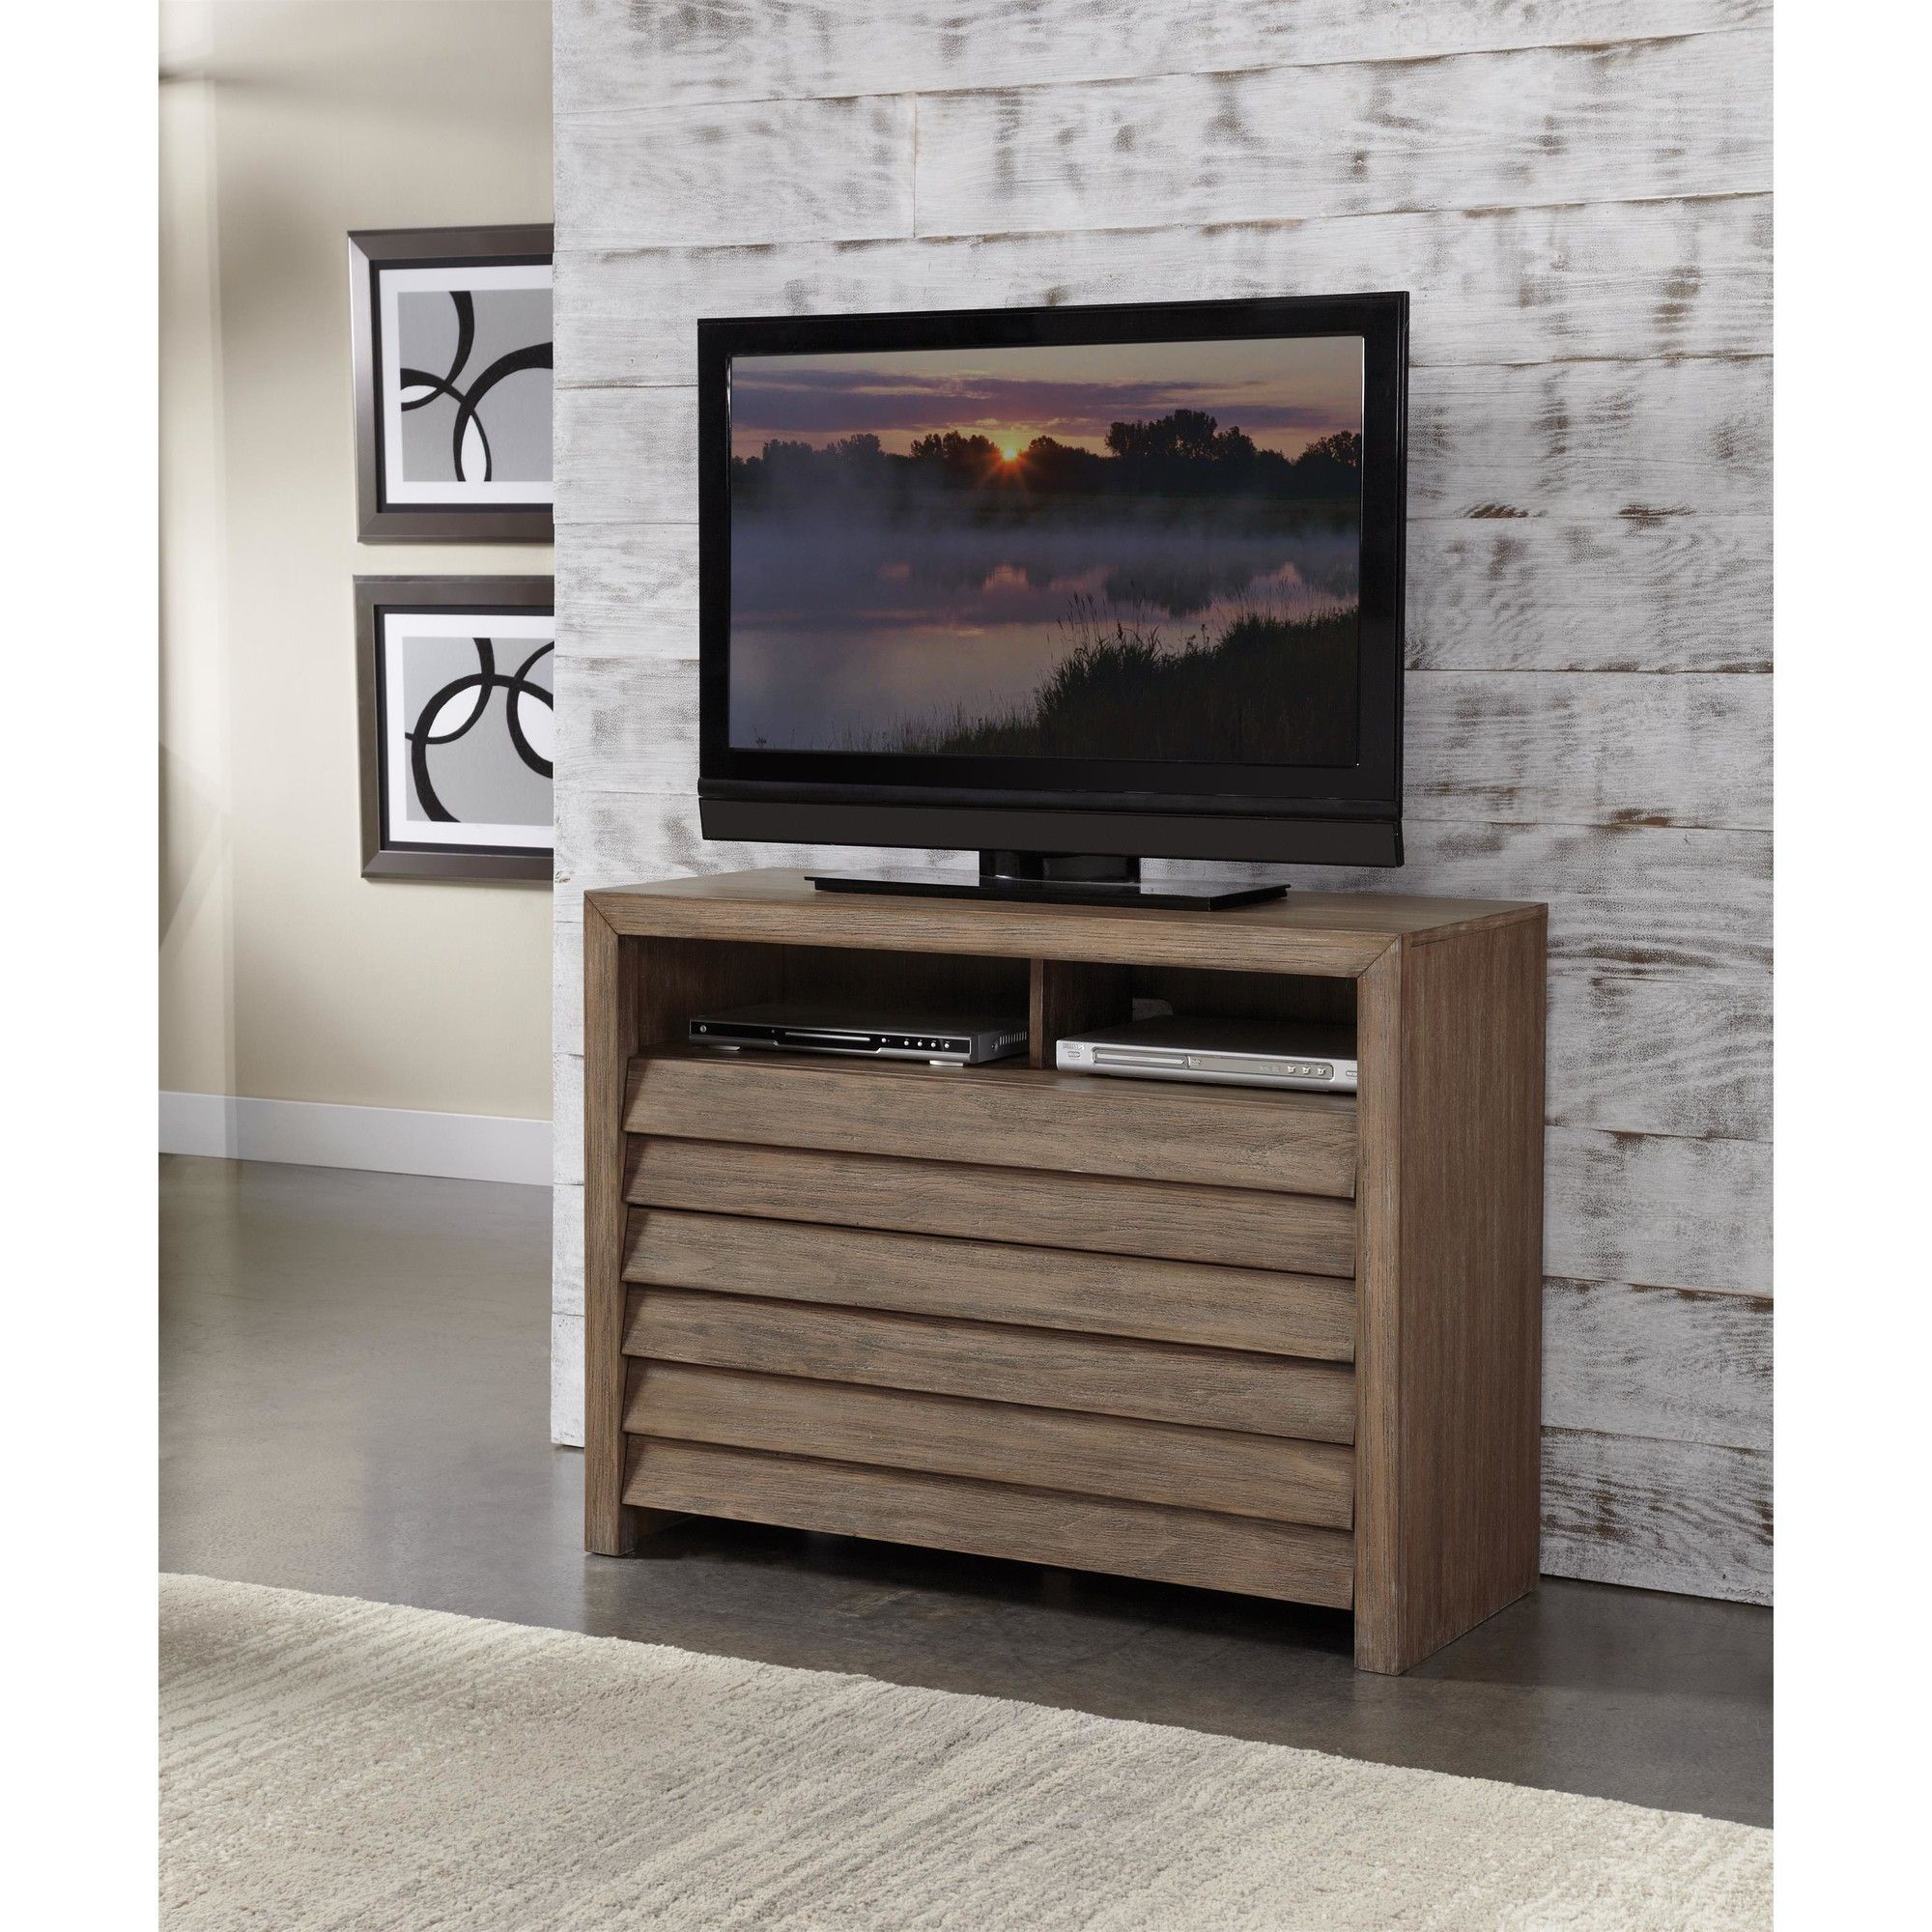 Hernandez TV Stand for TVs up to 50 inches Cool tv